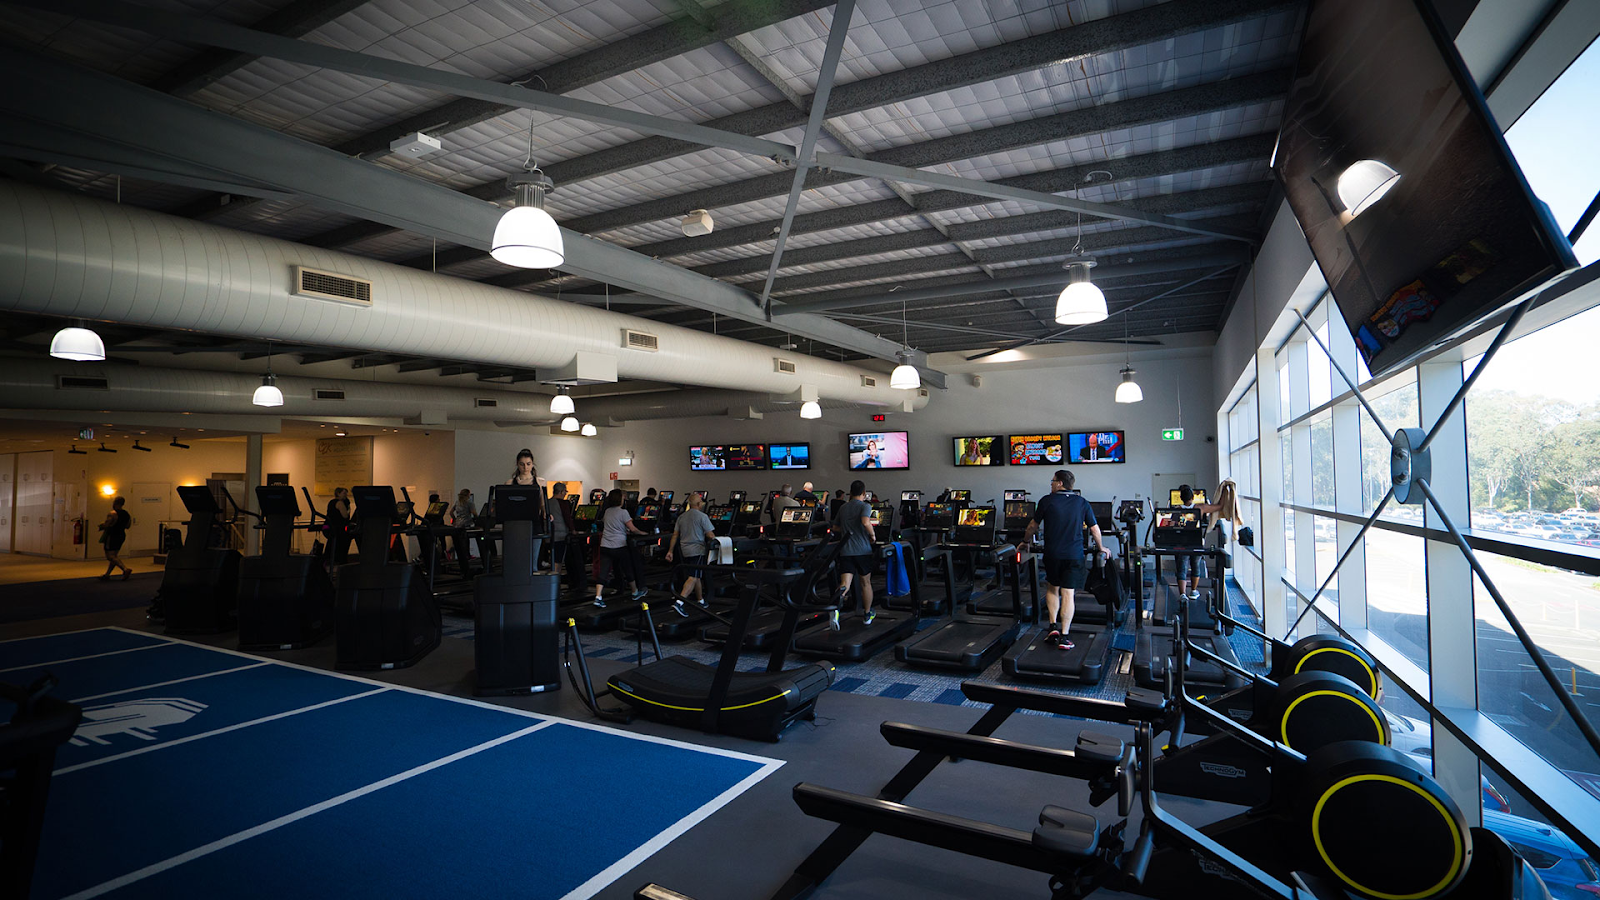 Castle Hill Fitness' gym equipment, one of the best places to work out in Austin.